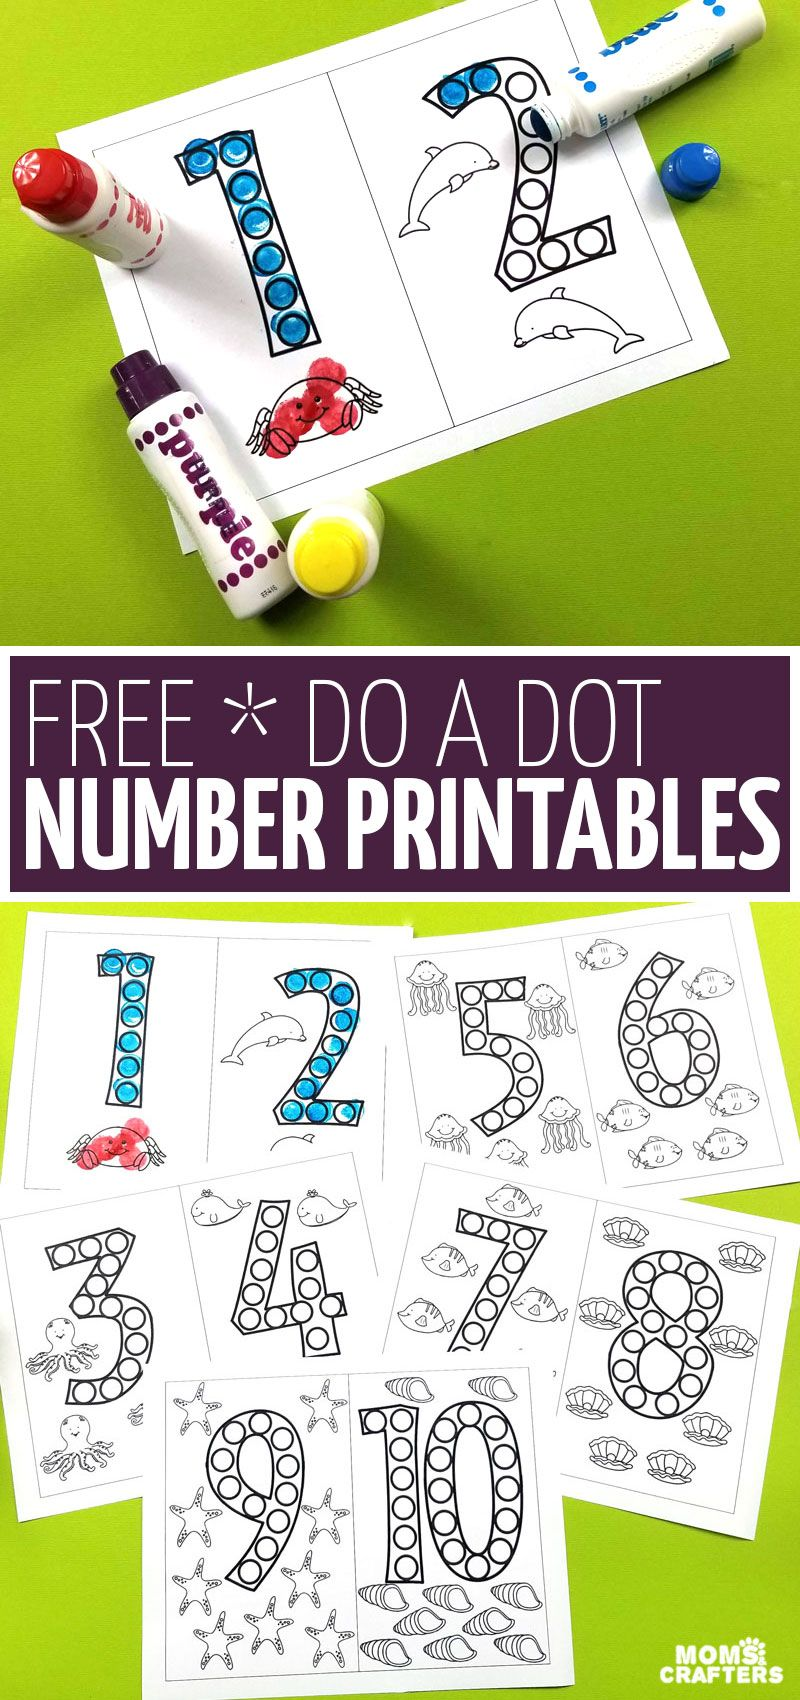 Do A Dot Number Printables Free Printable Moms And Crafters Numbers Preschool Do A Dot Kindergarten Prep [ 1700 x 800 Pixel ]